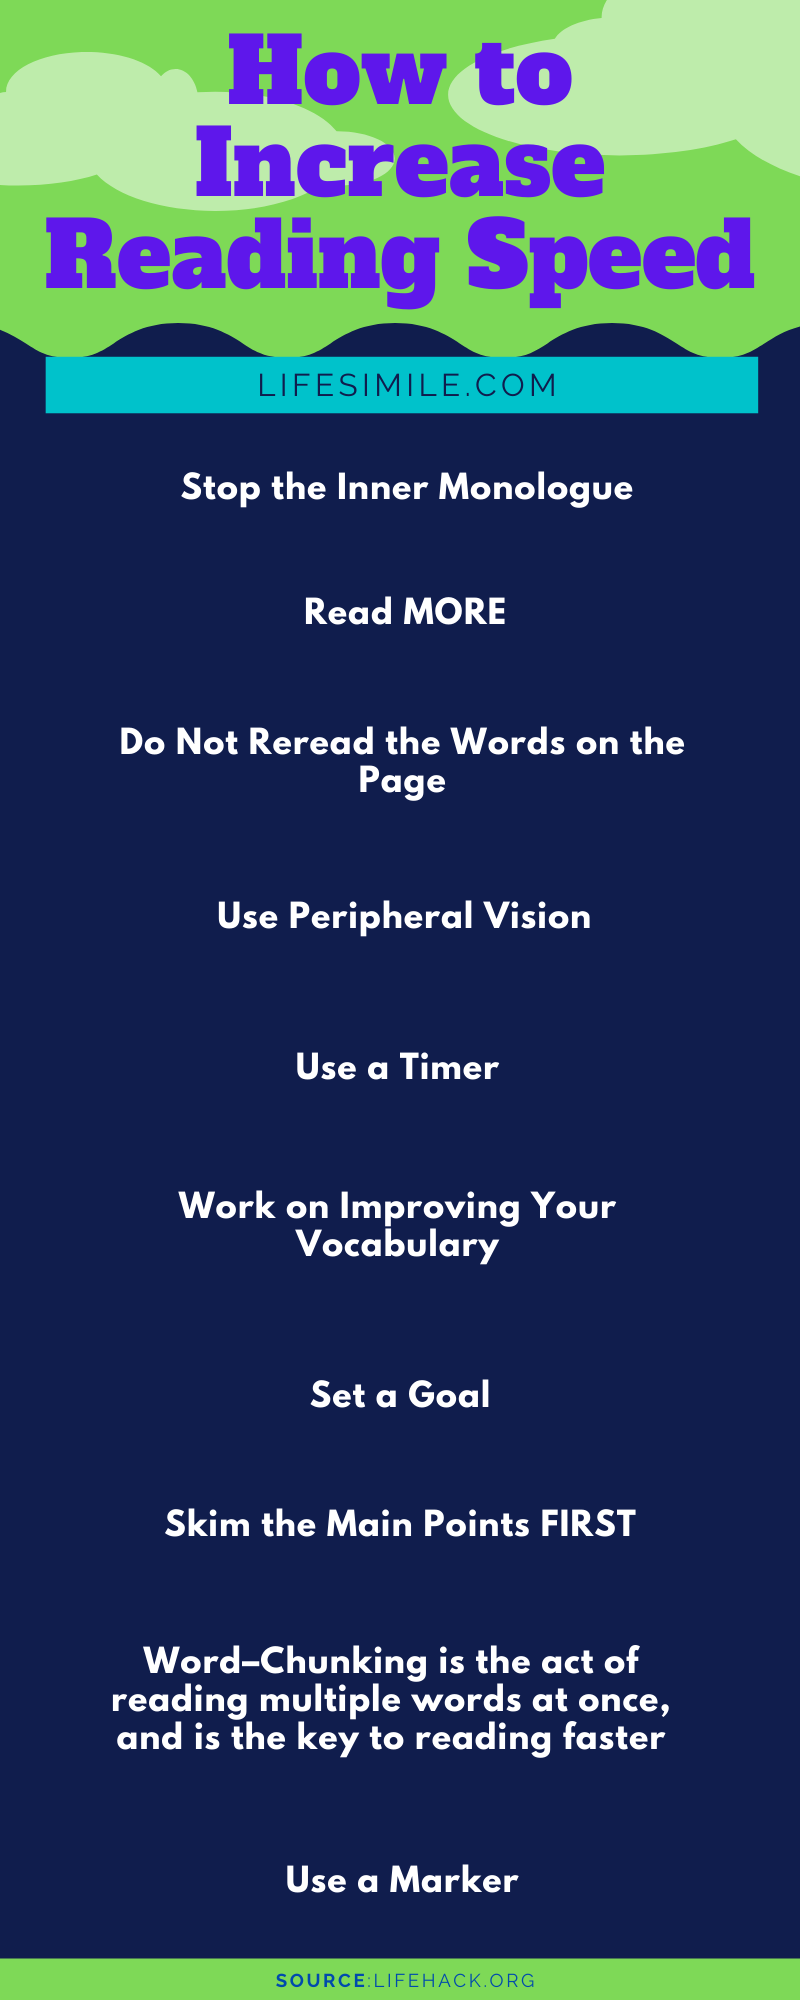 how to increase reading speed how to improve reading speed how to increase reading speed and comprehension how to increase your reading speed how to improve reading speed and comprehension how to improve your reading speed